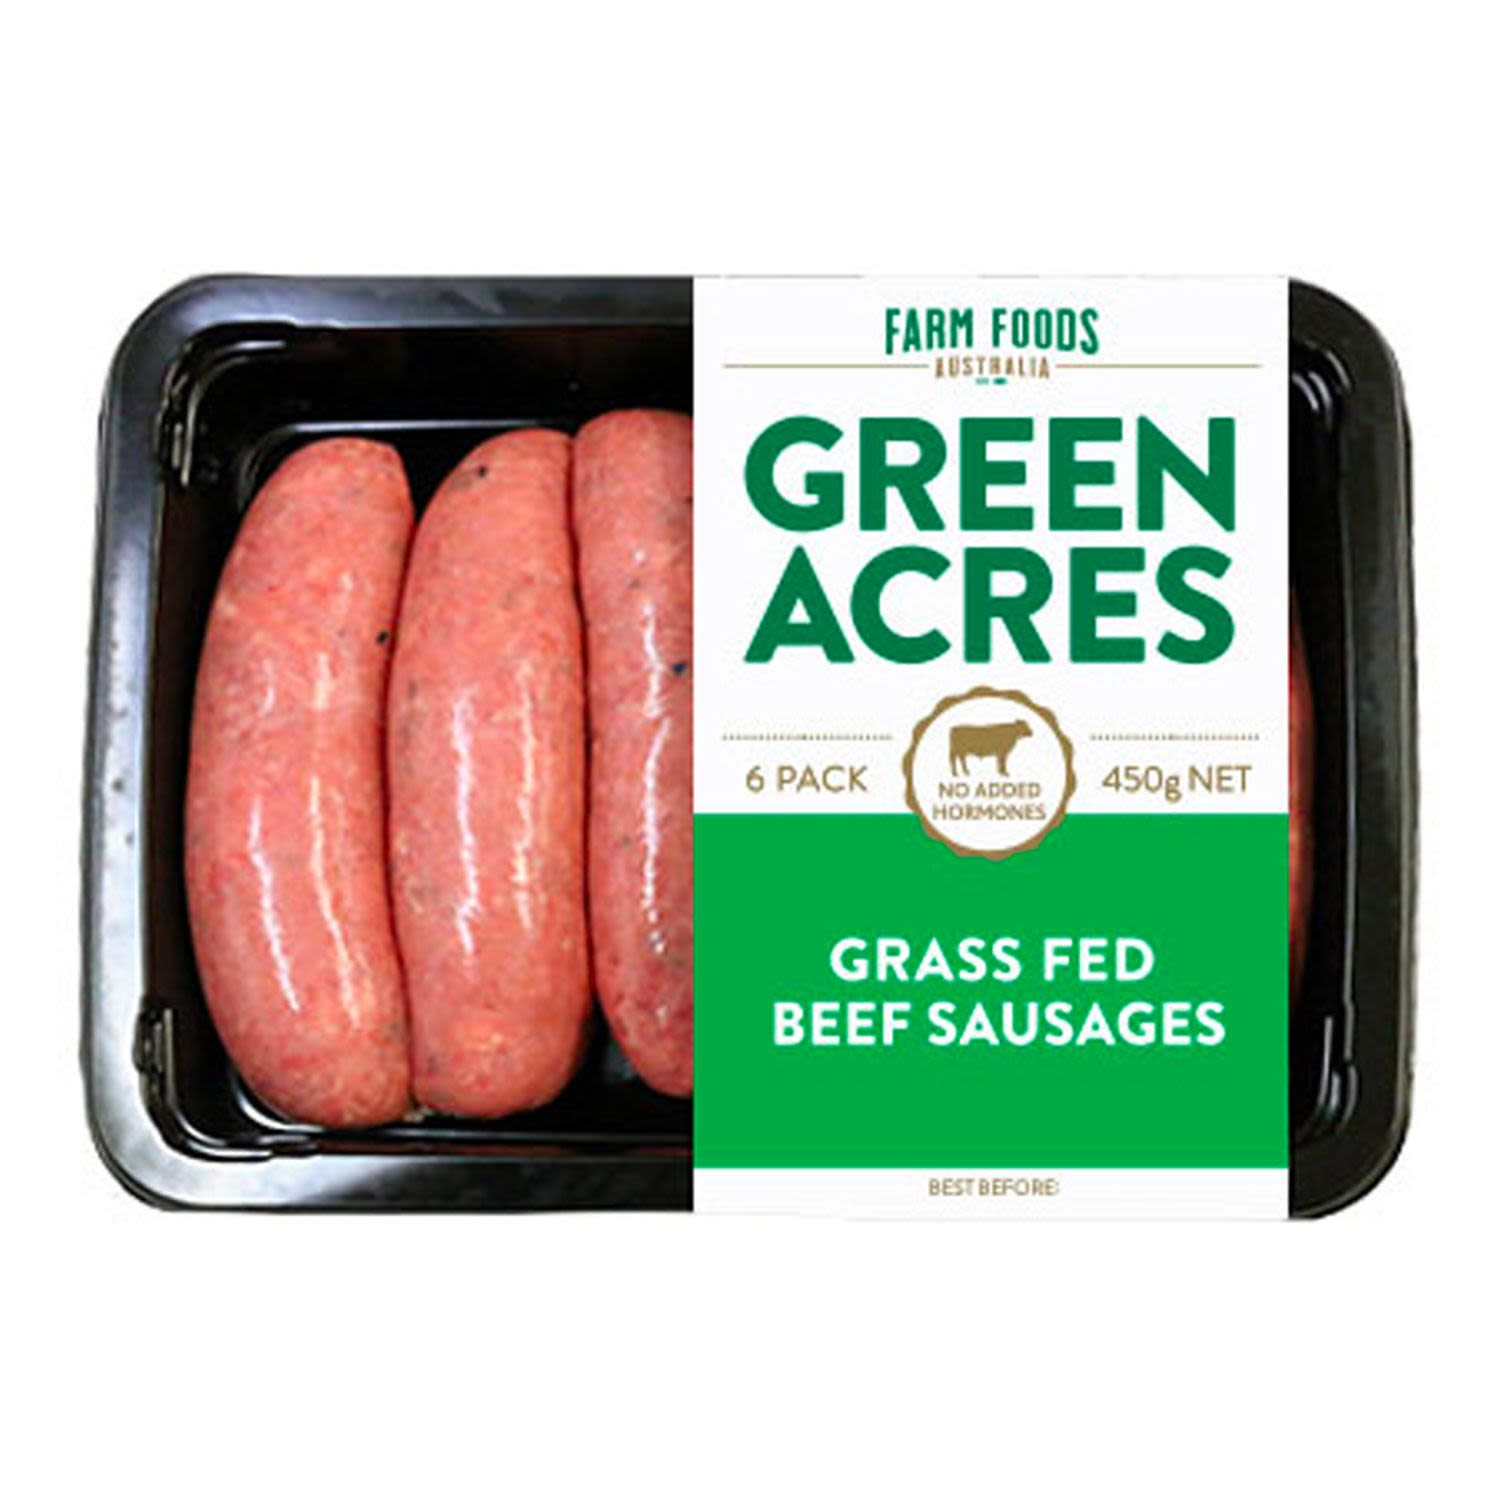 Green Acres Grass Fed Beef Sausages (6 Pack), 450 Gram